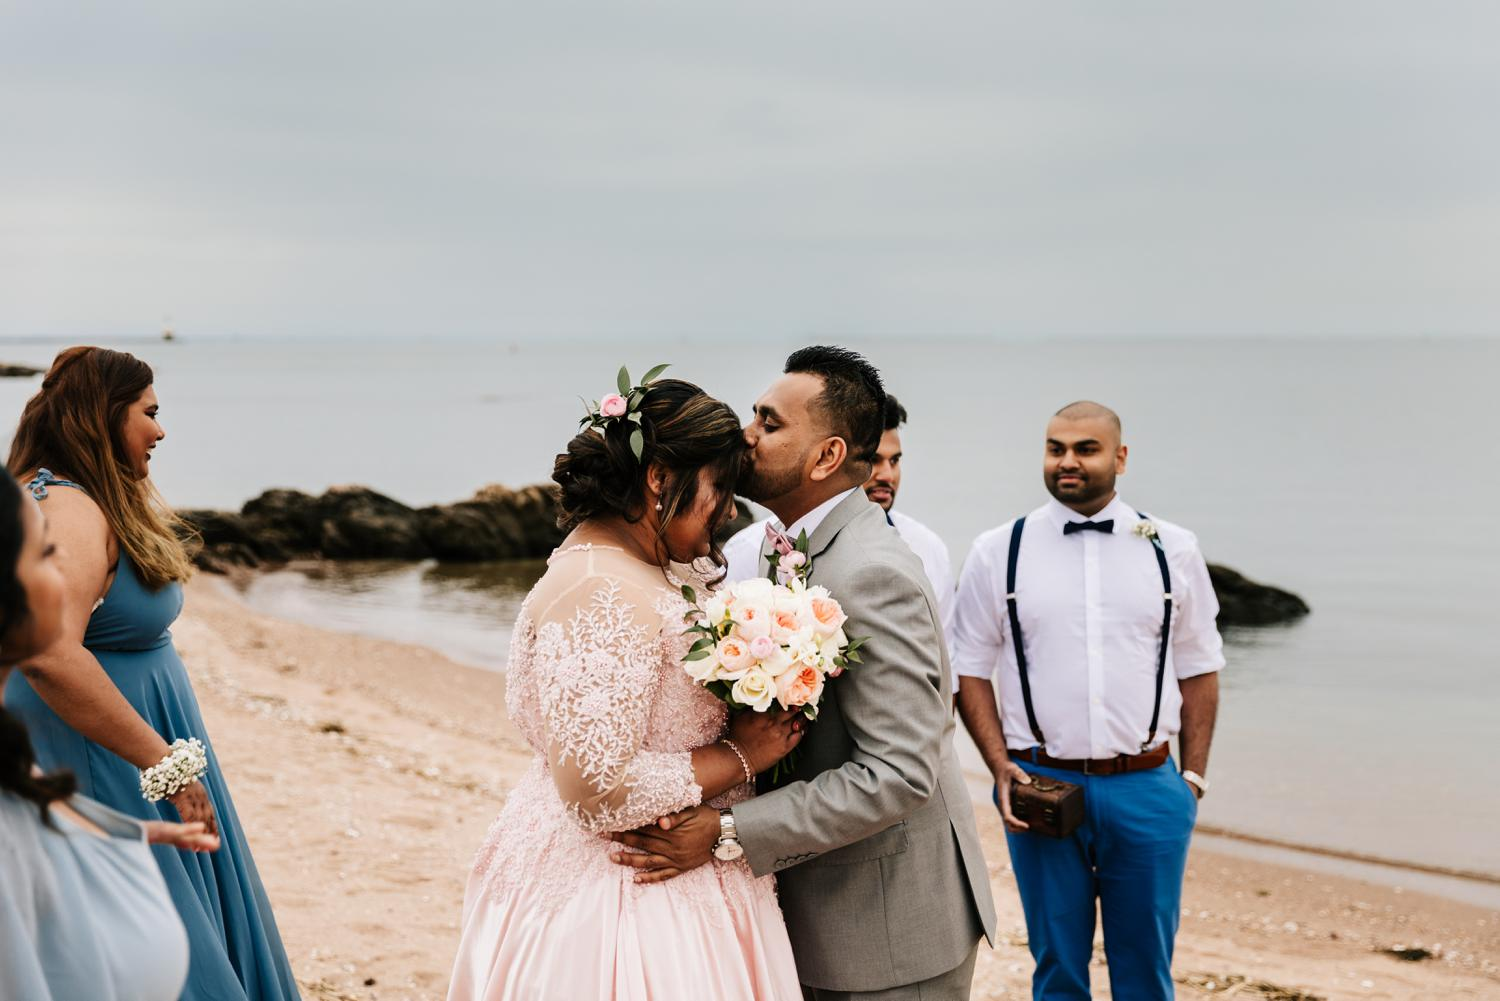 Groom kissing bride's forehead during intimate beach wedding